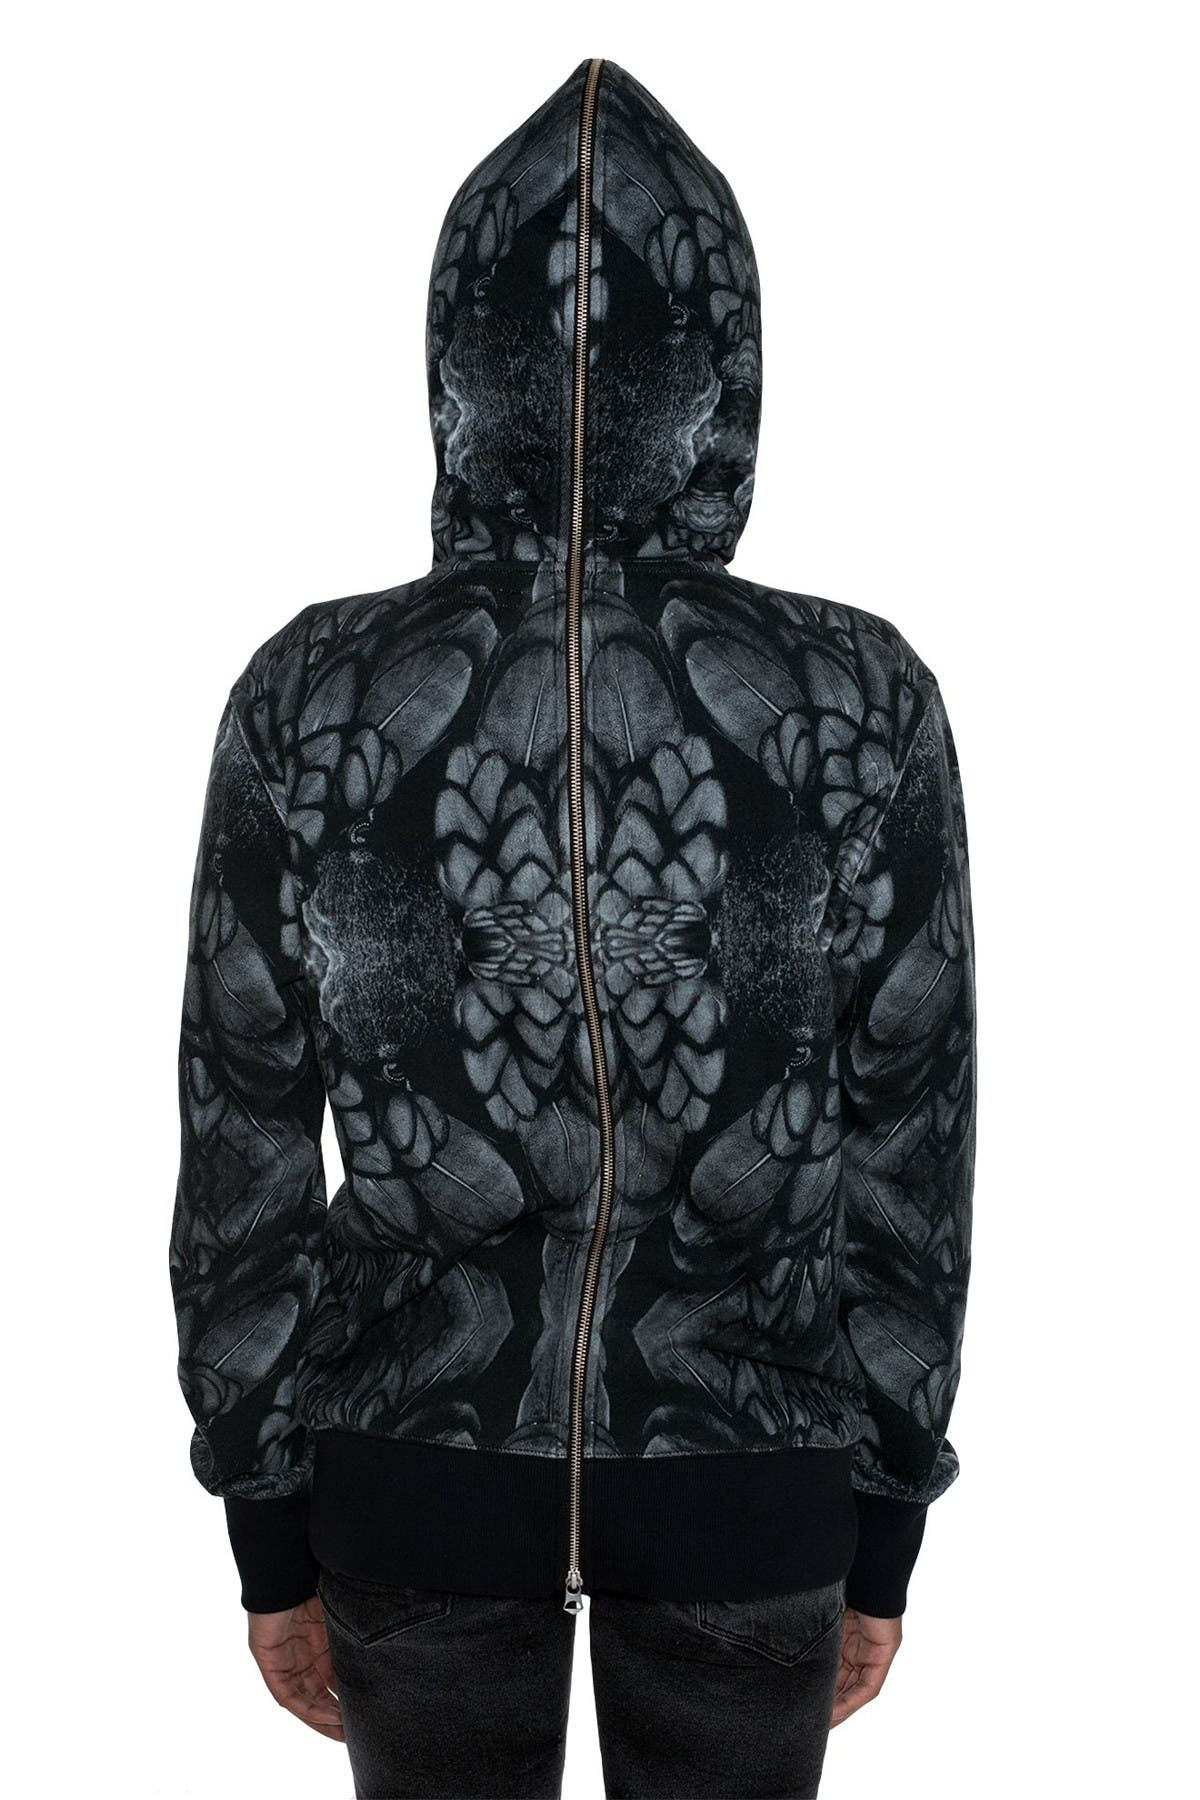 Image of Cult Of Individuality Raven Sublimation Split Zip Hoodie